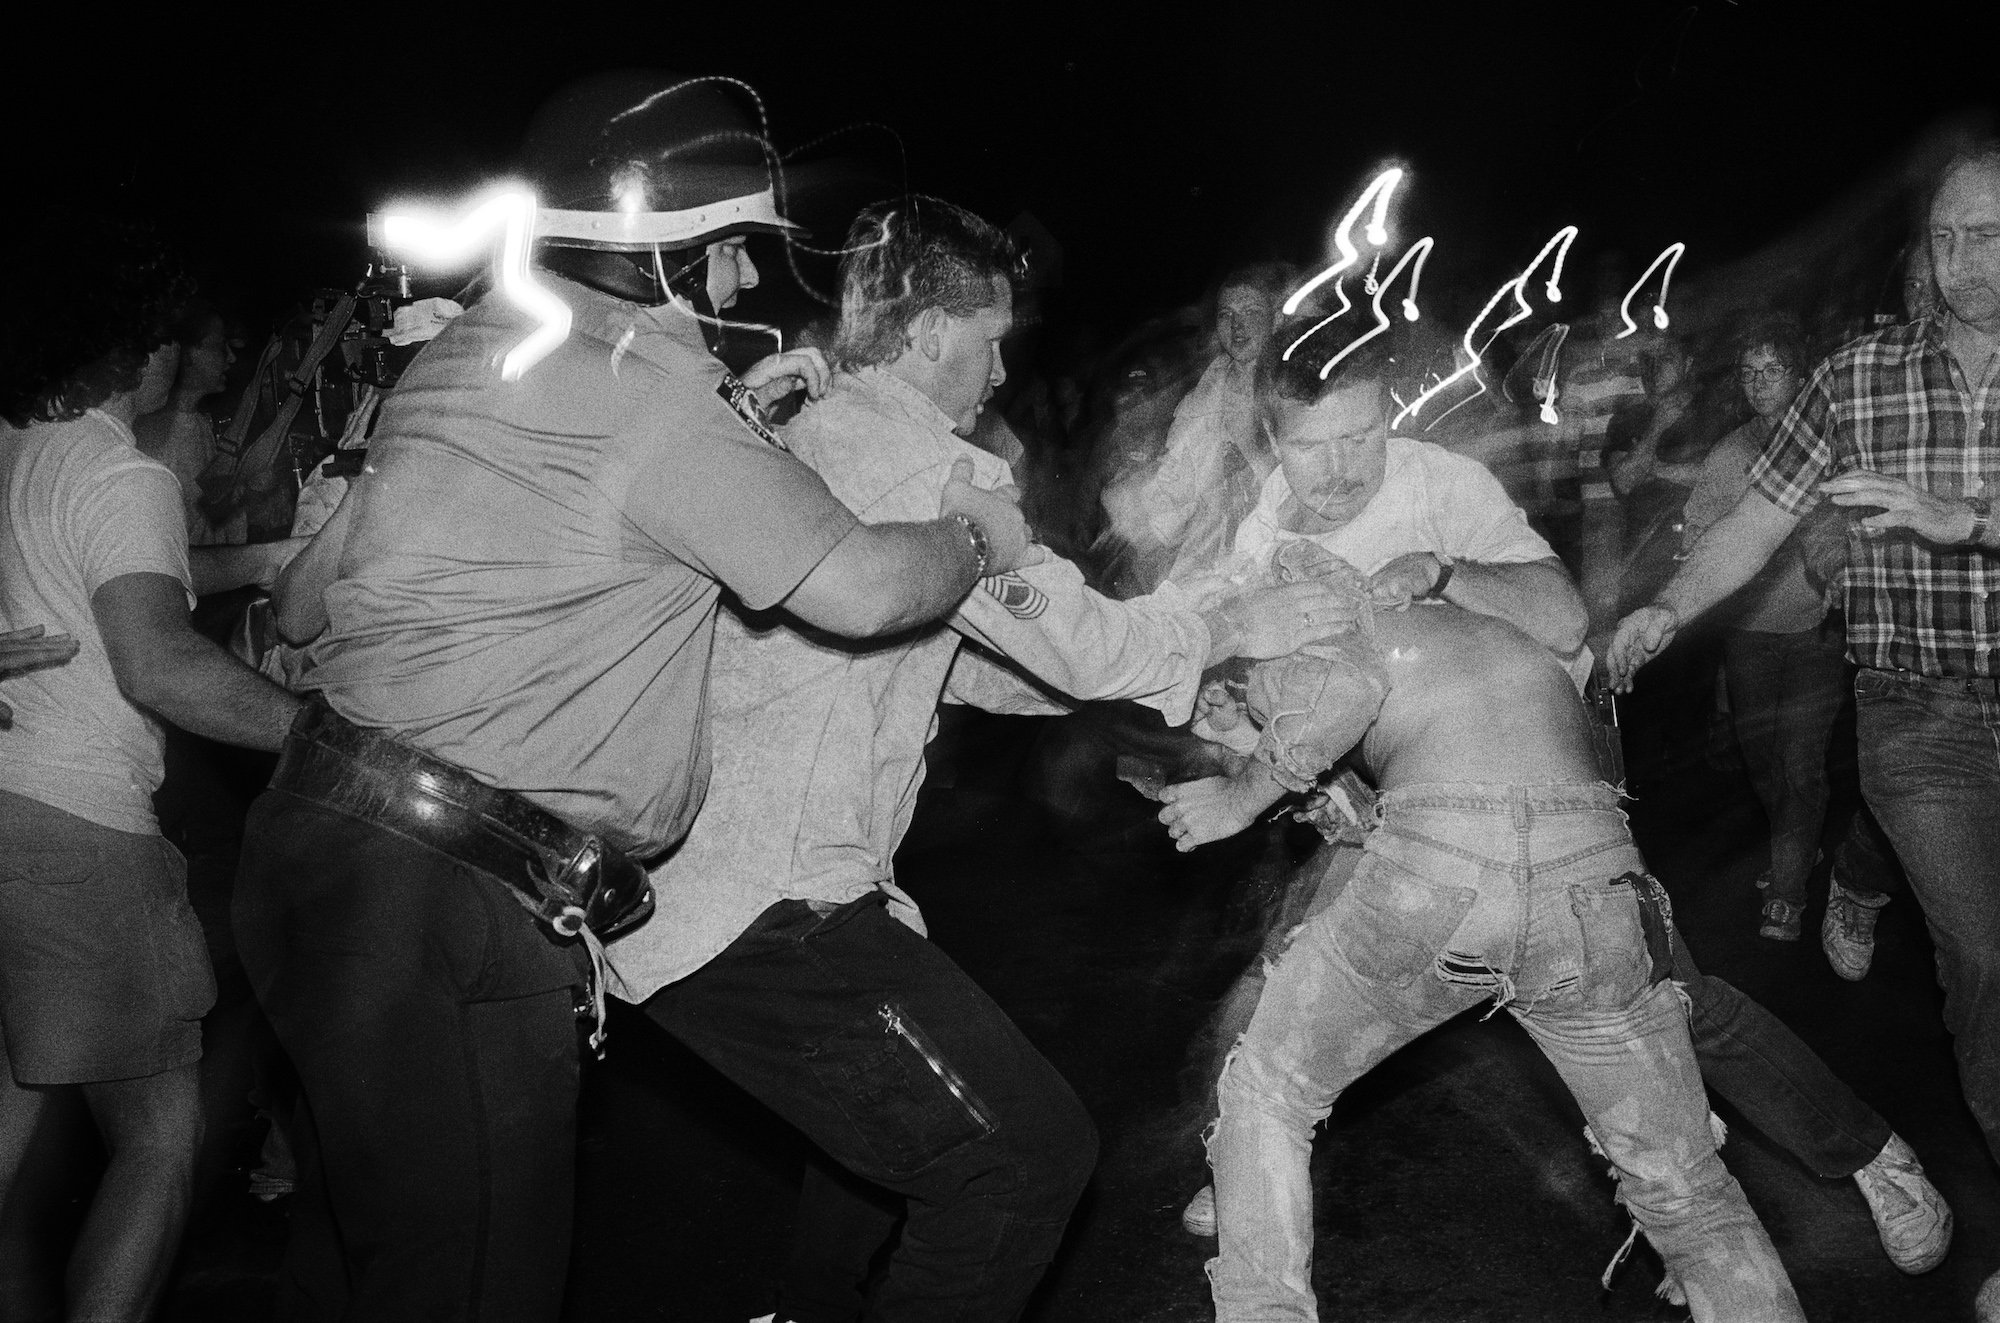 This photographer shot the radical protests that inspired Occupy Wall Street:  https://t.co/uooH37wooB https://t.co/U6enyRSN2j